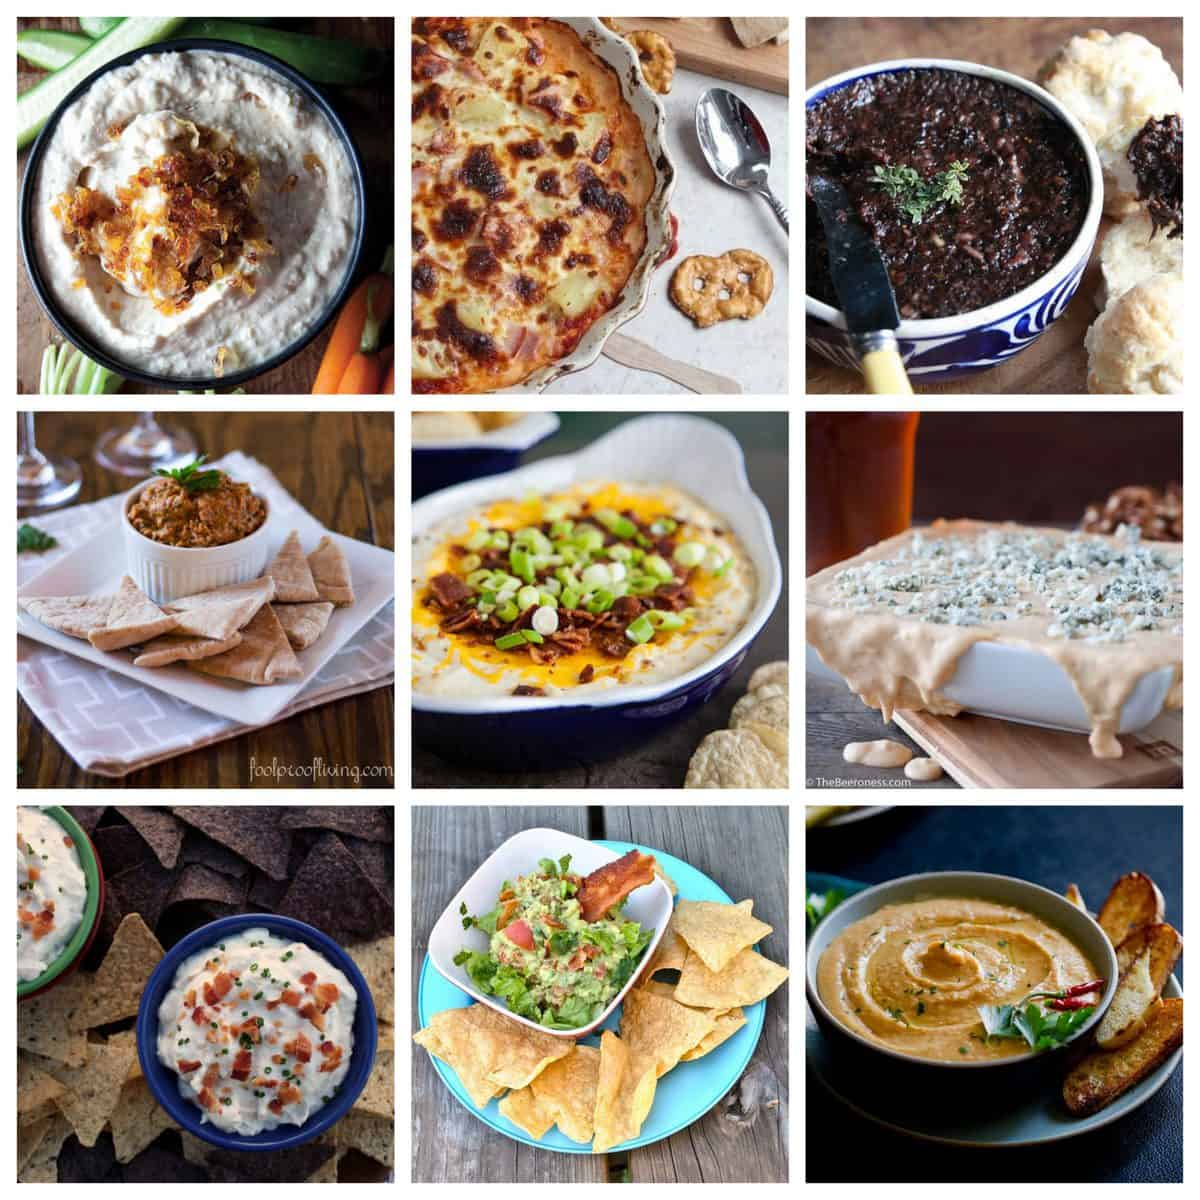 Party Dips for The Big Game - A roundup of delicious and unique crowd-pleasing dip recipes.